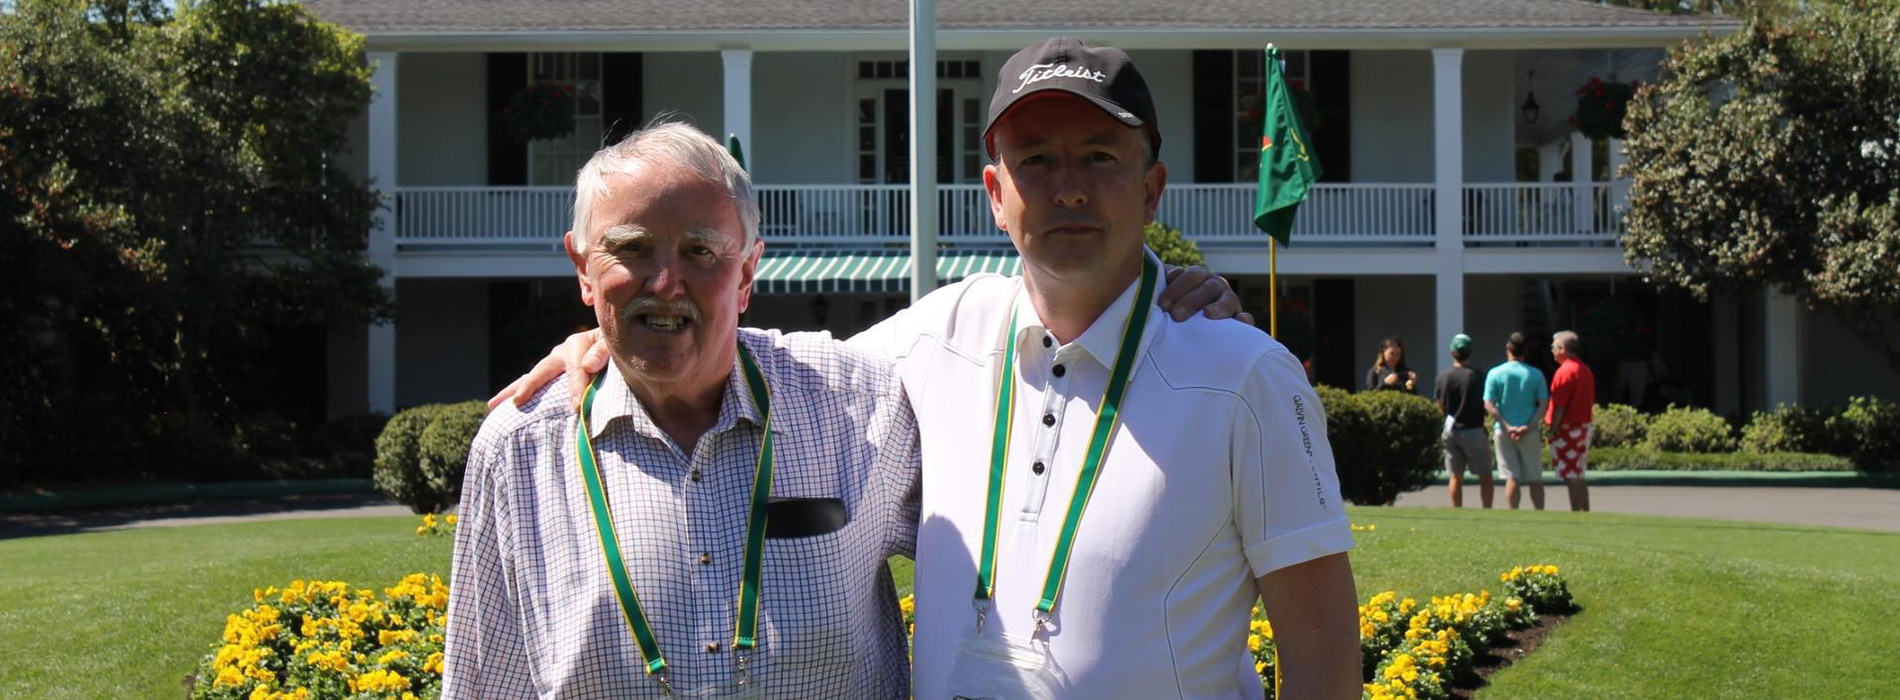 Patrons Guide to The Masters – Insider Tournament Tips